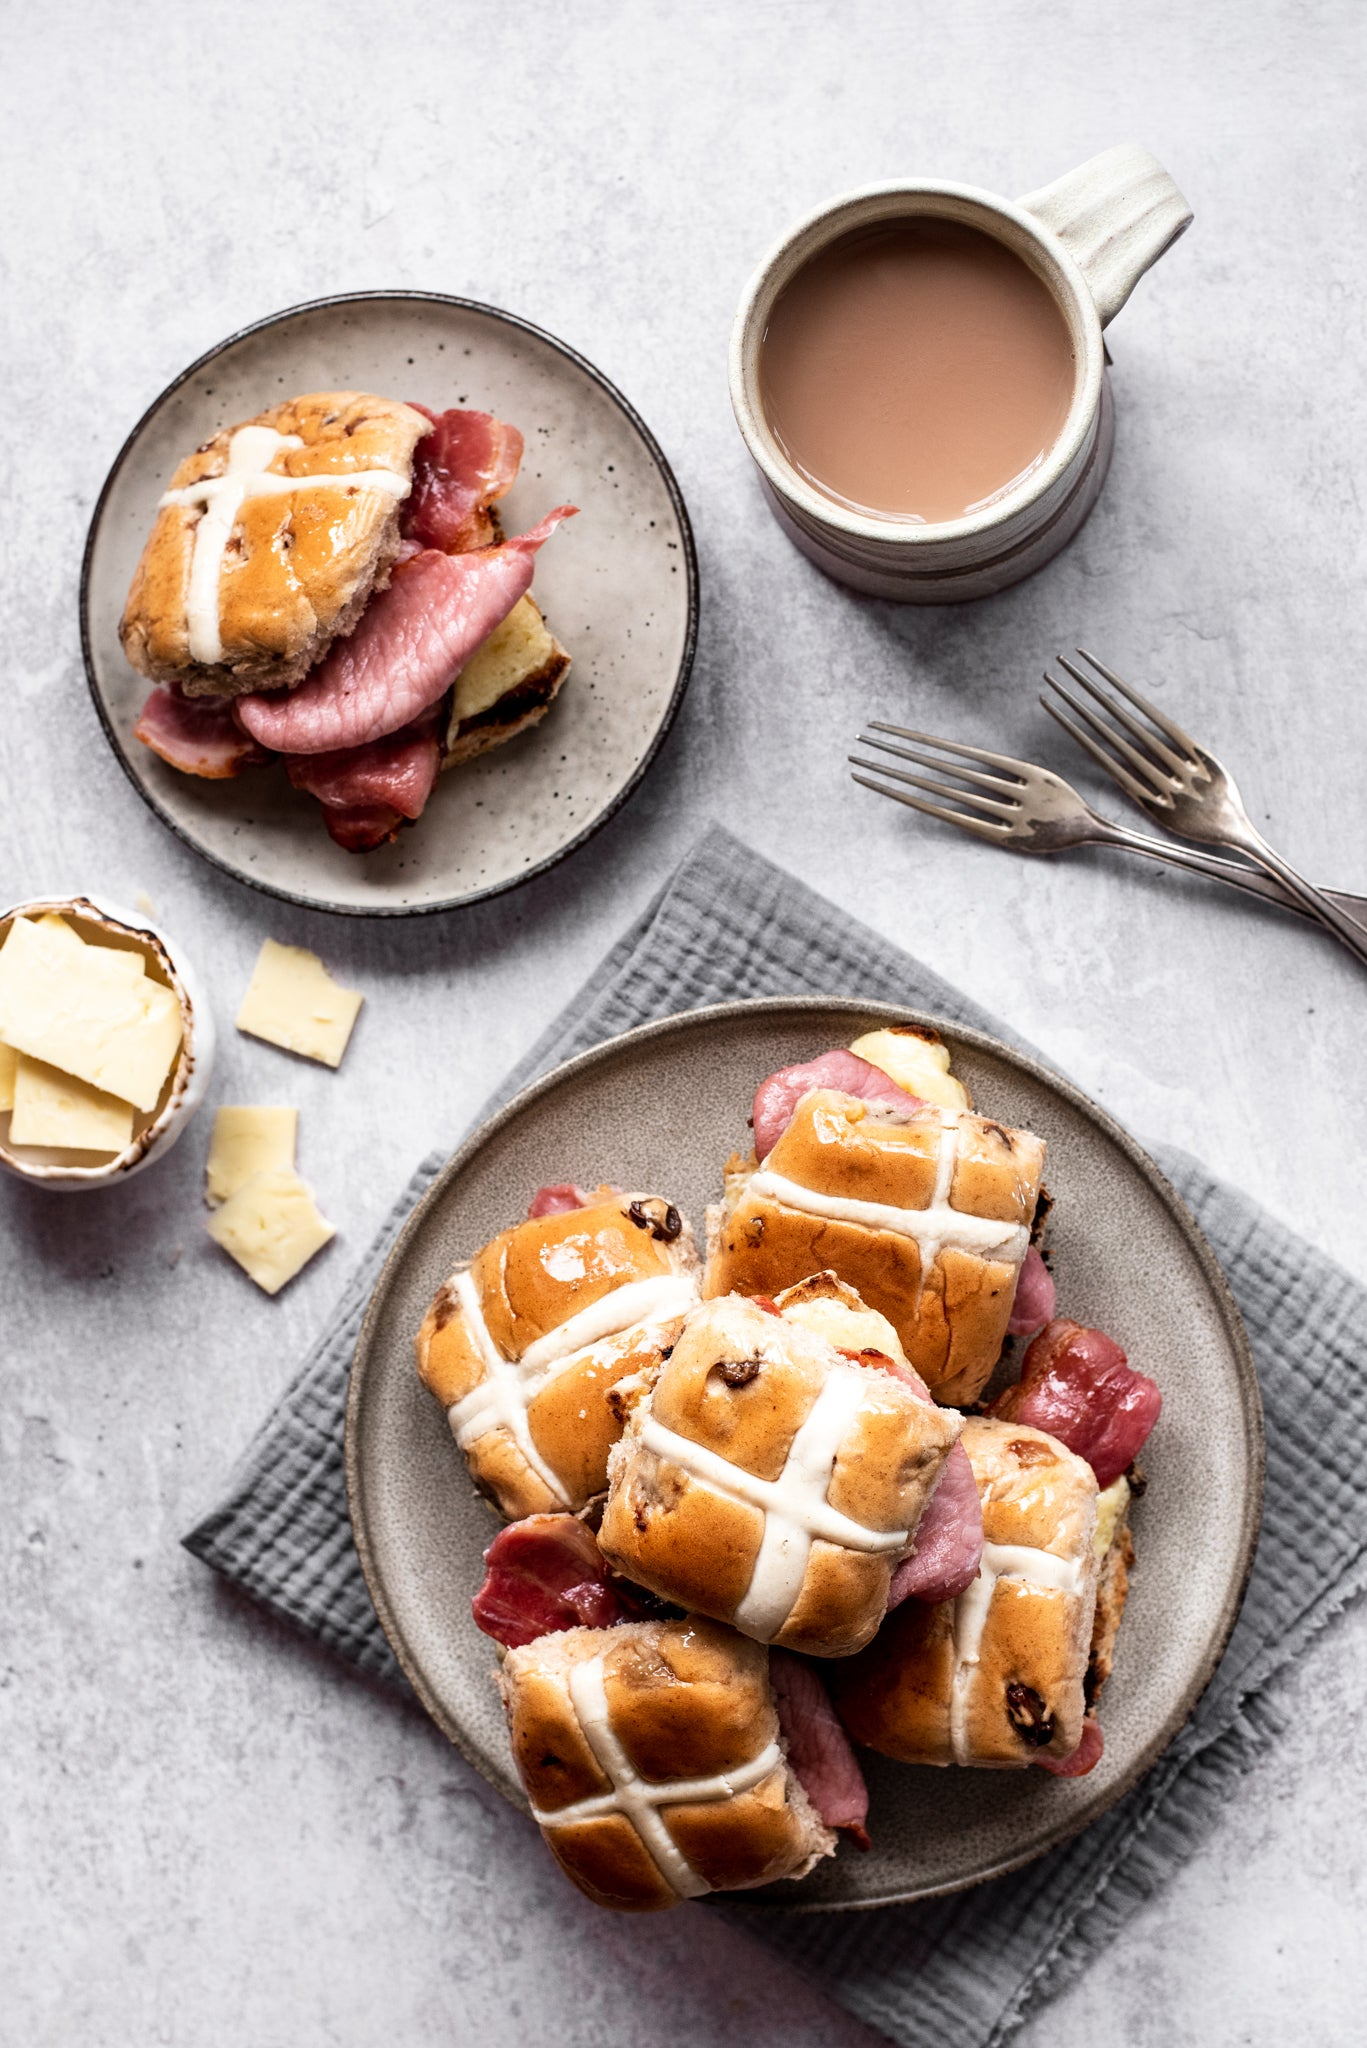 Plate of hot cross buns stacked up. Cup of tea. Two forks. Plate with hot cross bun and bacon